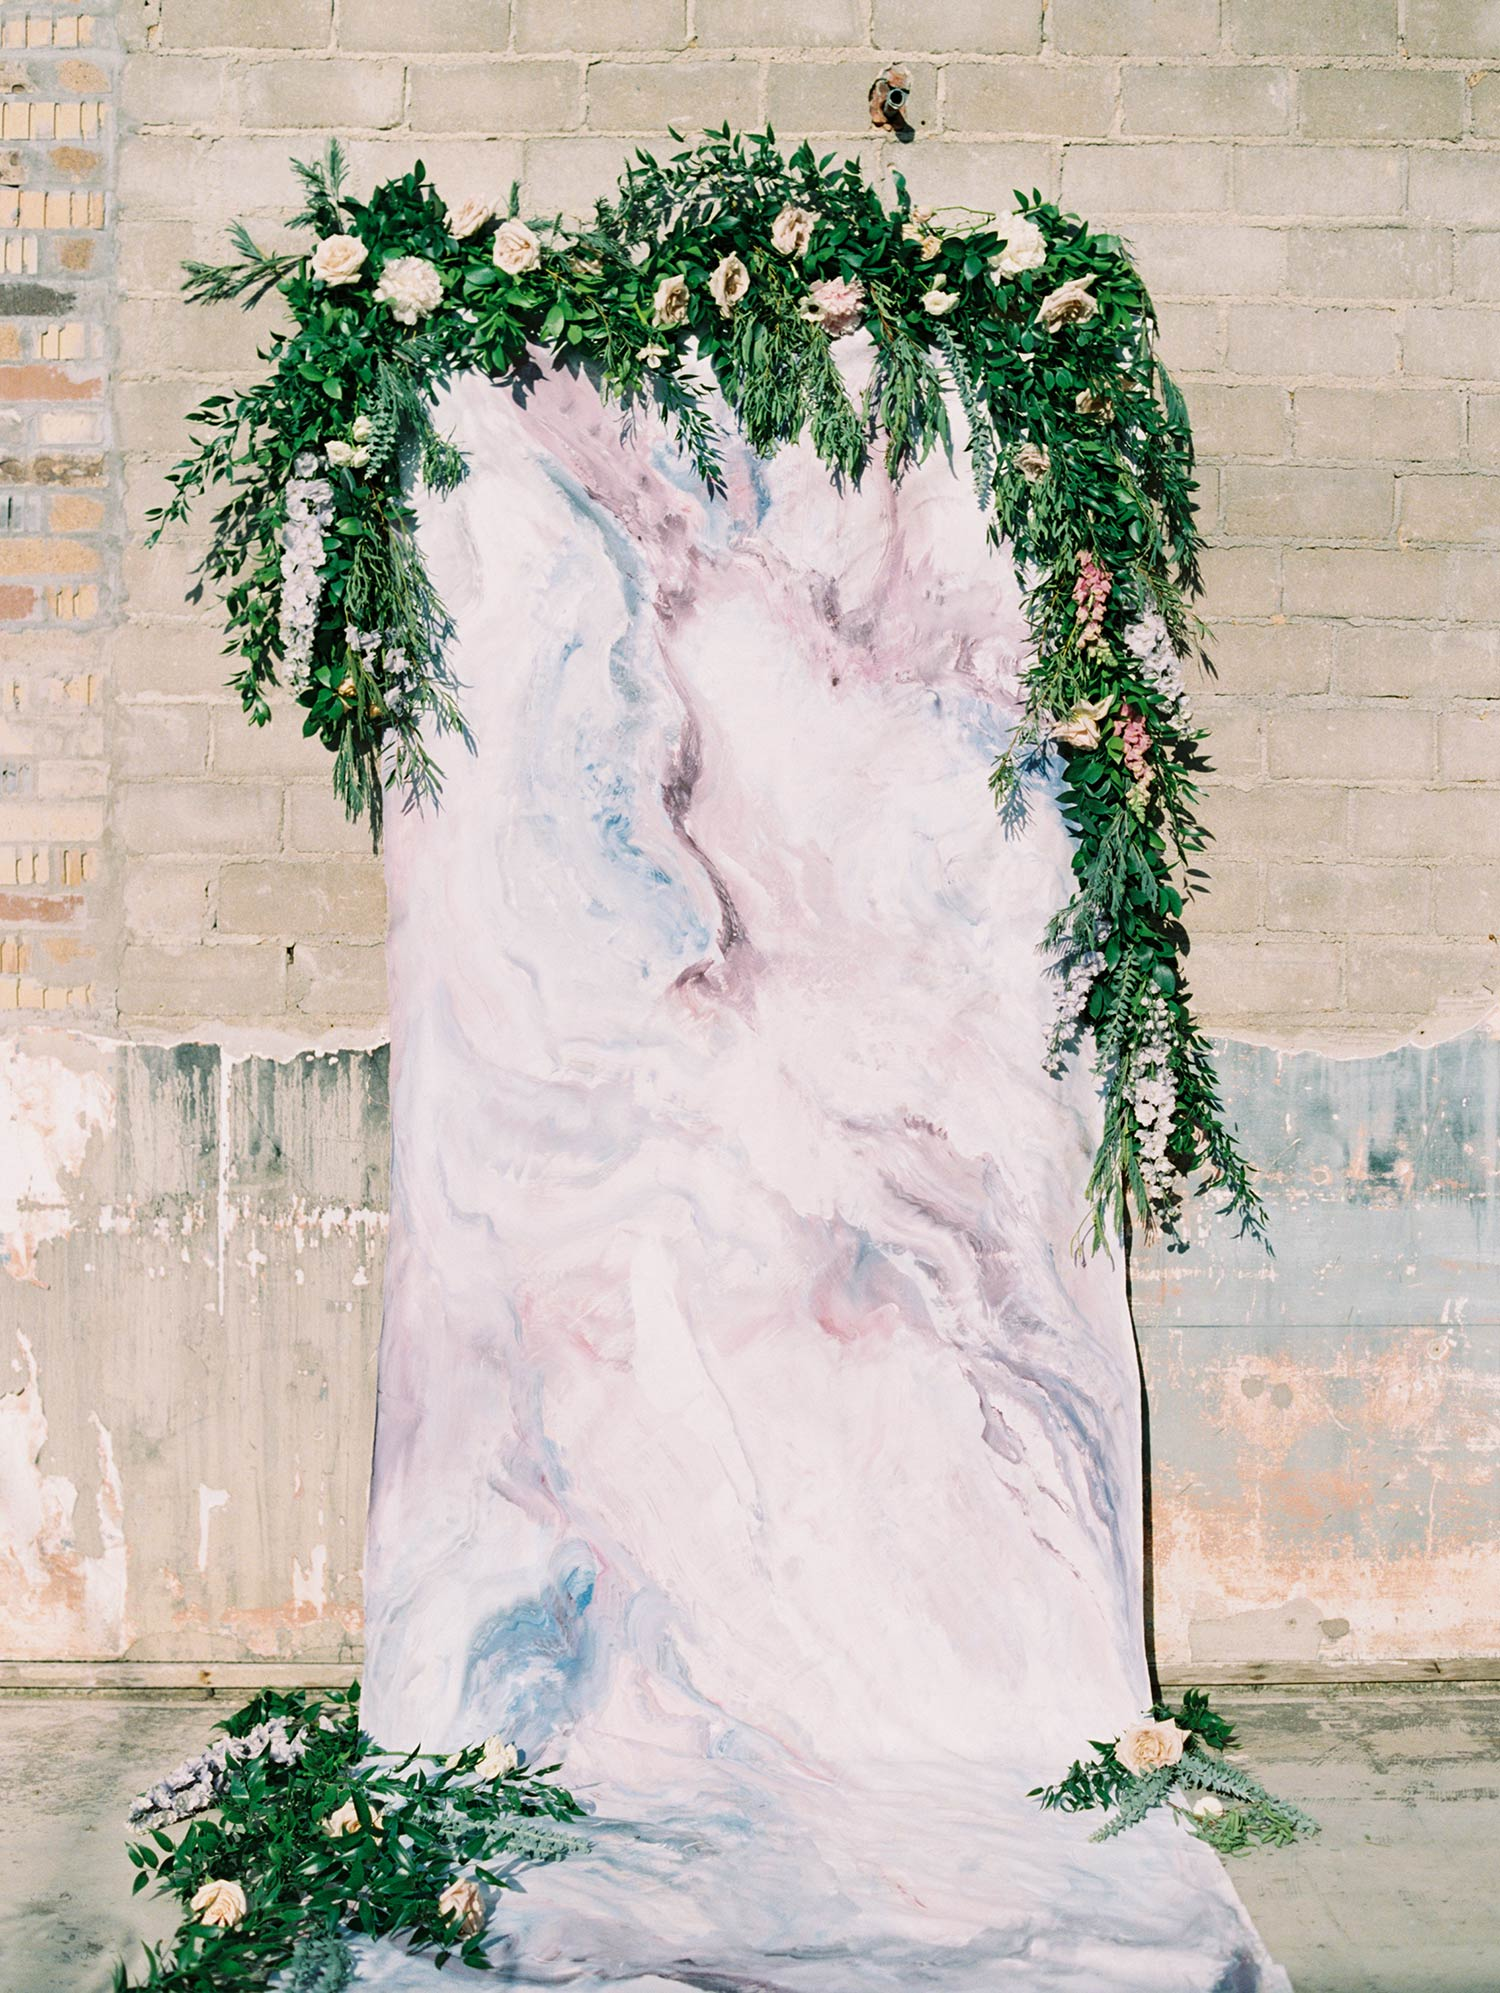 Marble moody backdrop for a wedding with greenery